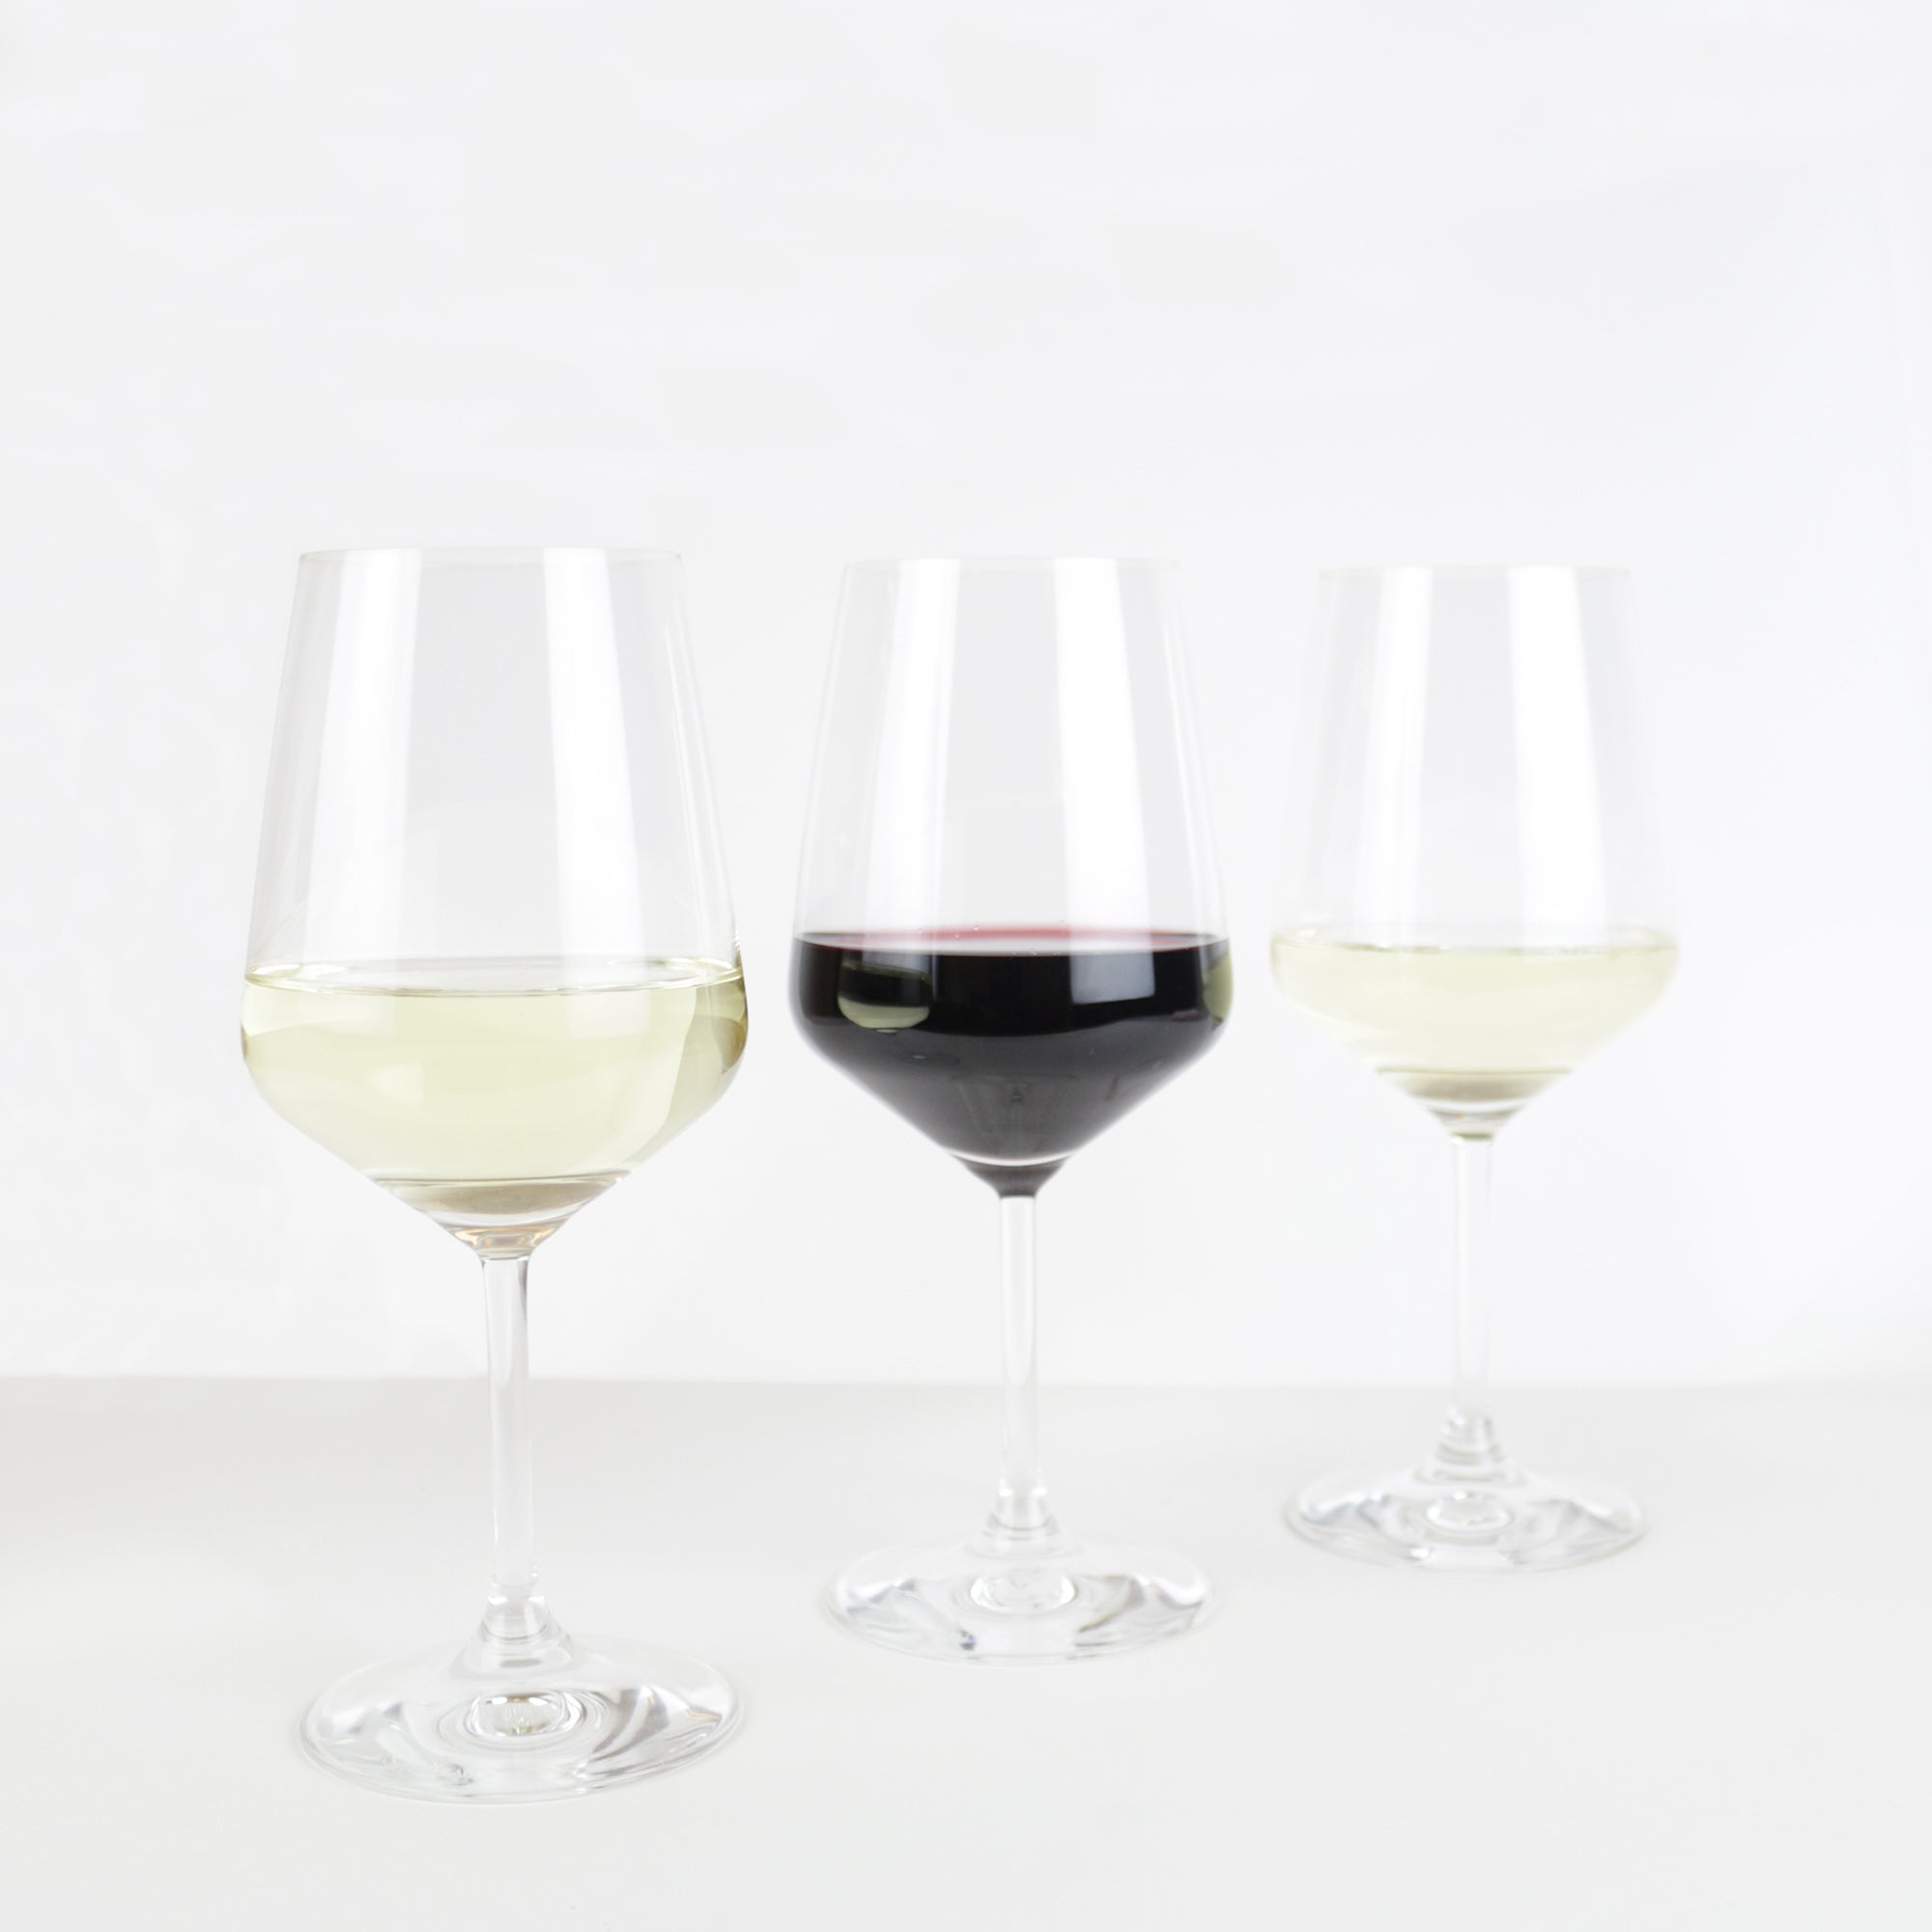 Spiegelau Universal Crystal Wine Glass (Set of 4)